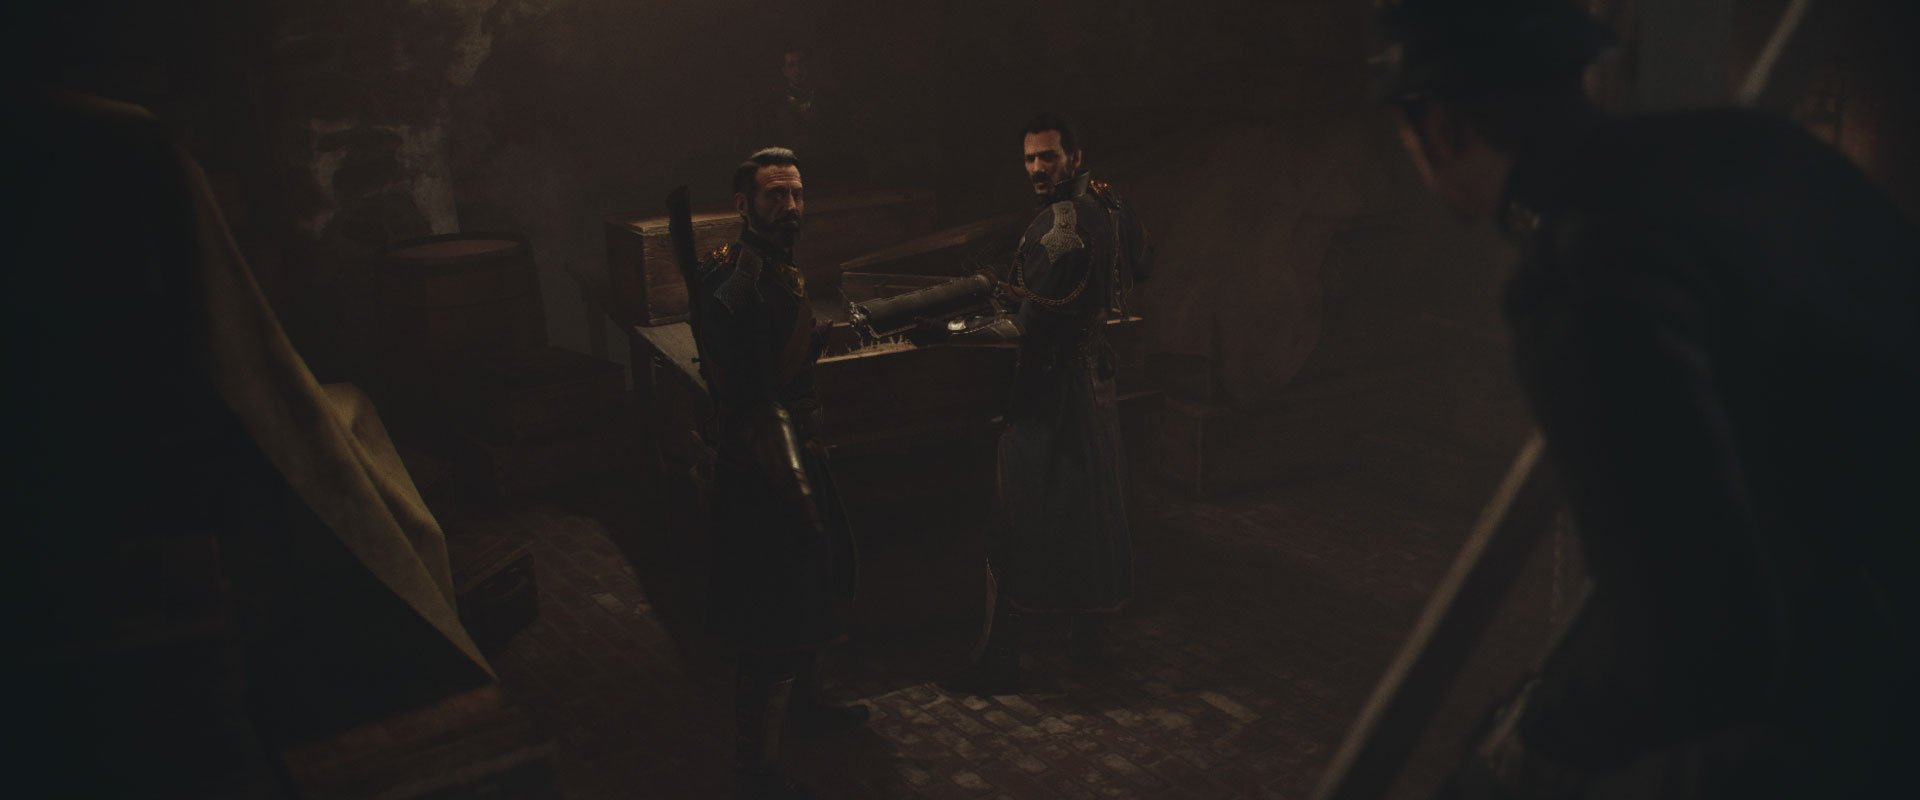 The-Order-1886-Preview-Screenshots-14